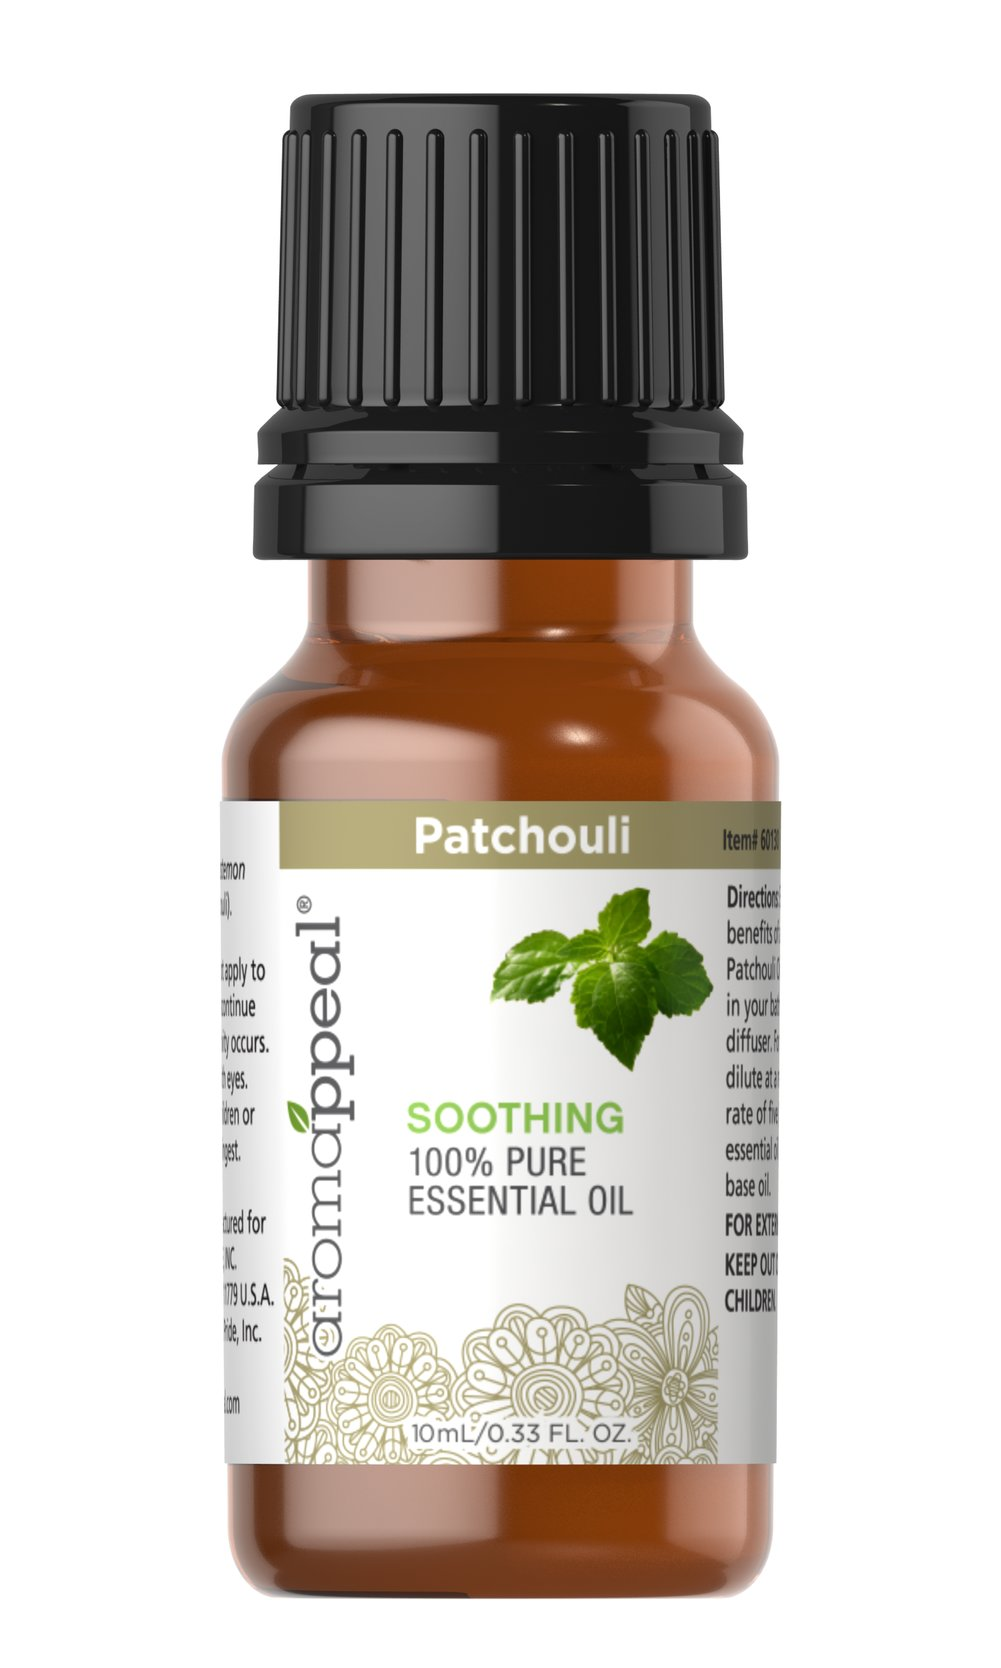 Patchouli 100% Pure Essential Oil Distinguished by its sweetly rich, earthy scent, Patchouli can set the scene for a quietly meditative aromatherapy encounter. </p>Experience its tranquil allure and its traditional effects on digestive health, as well as its use to stimulate clear breathing. 10 ml Oil  $14.99